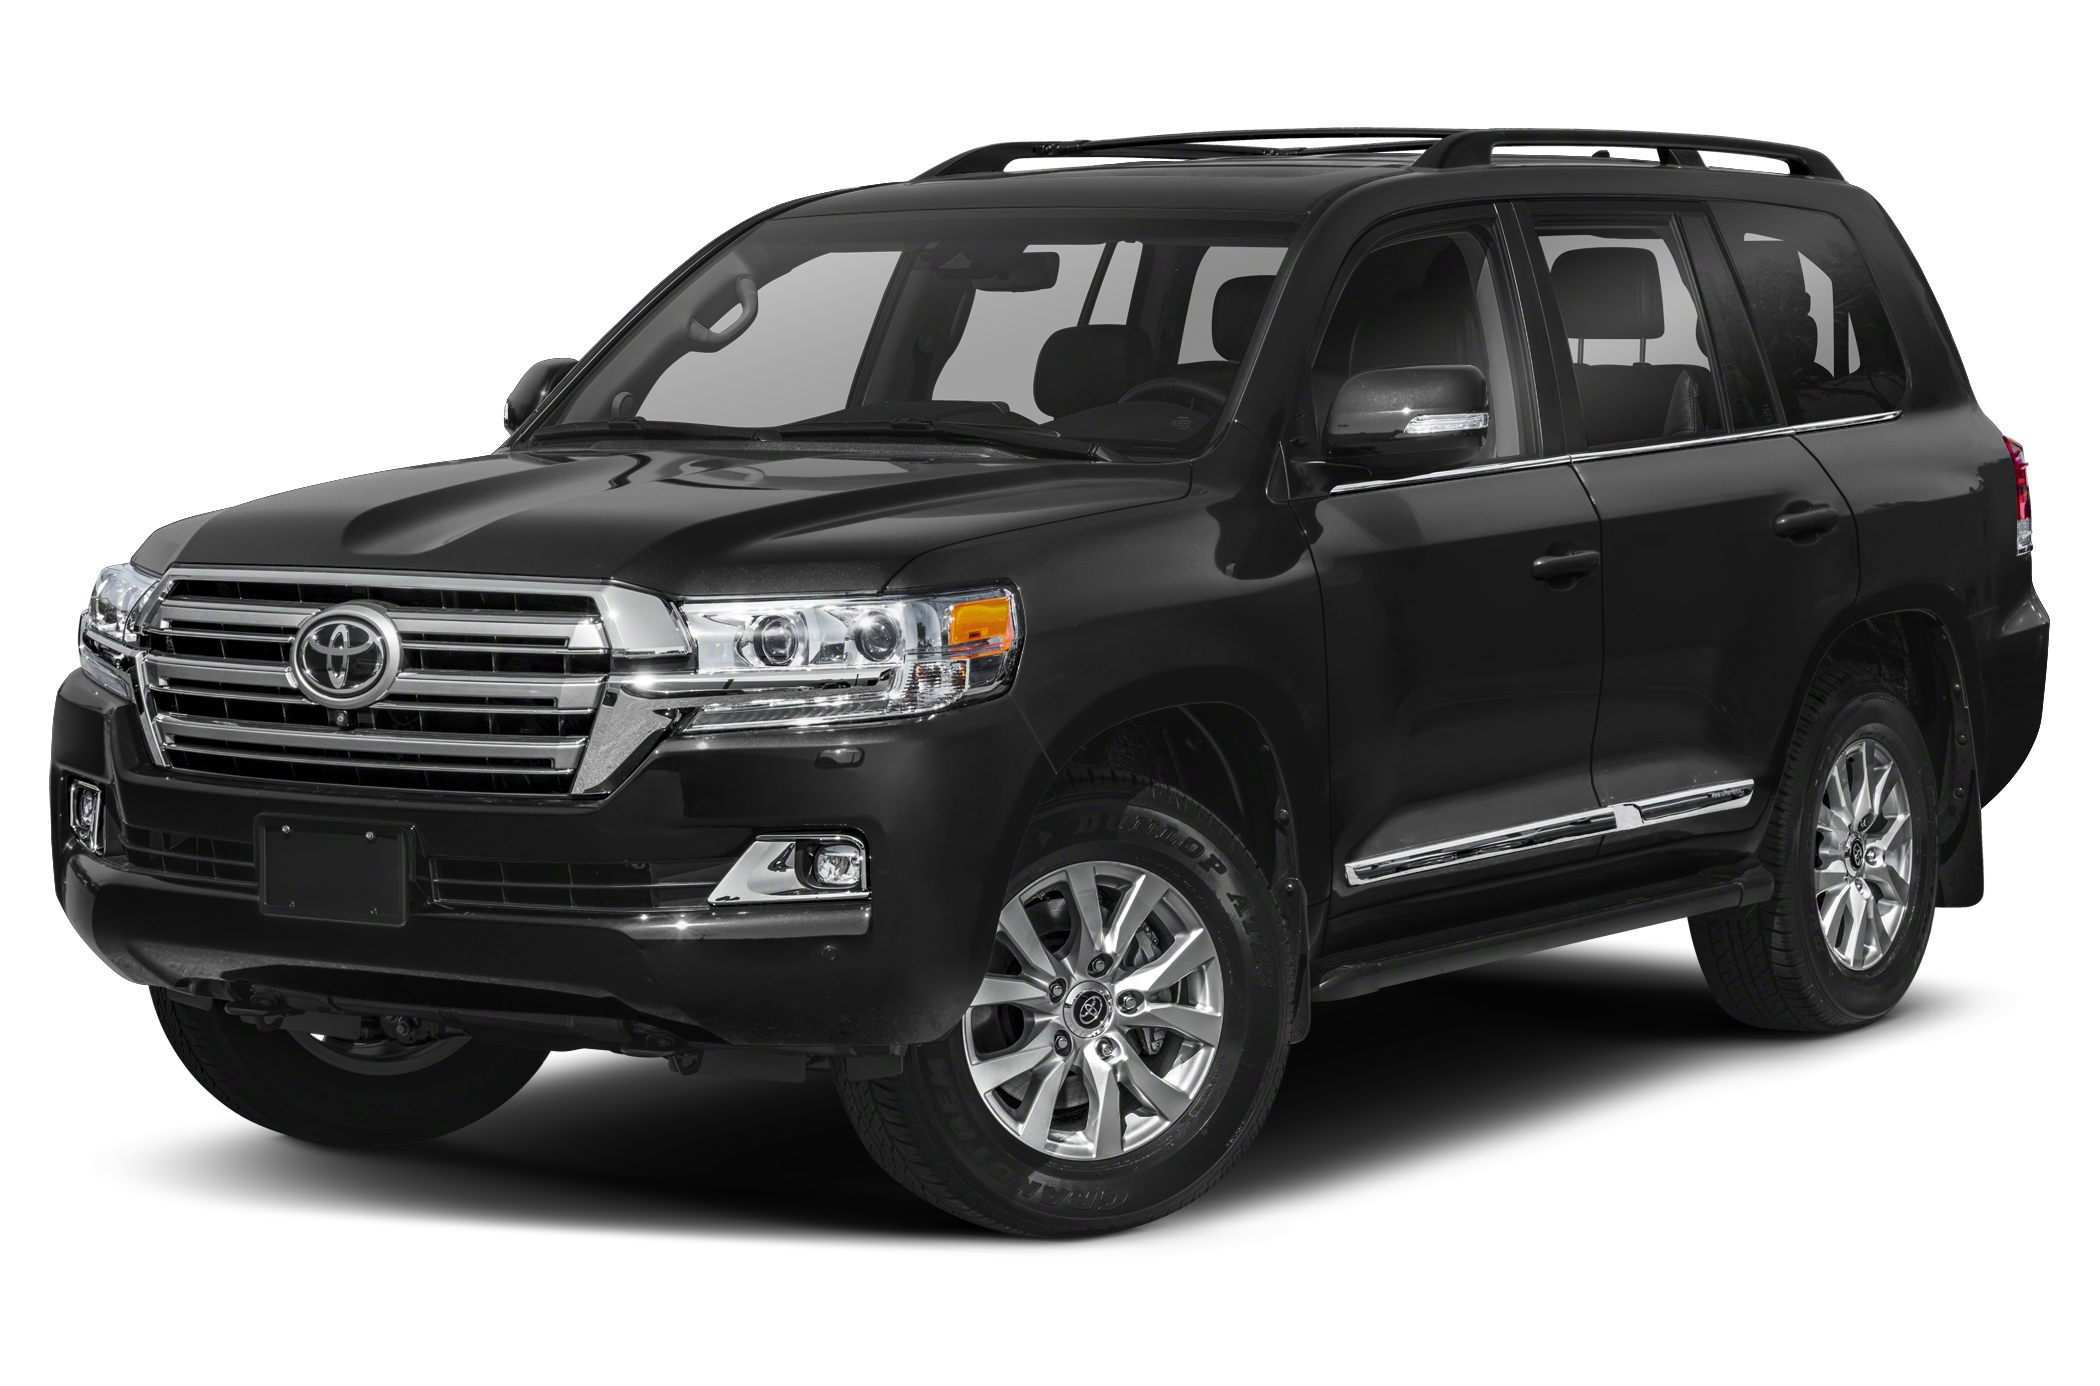 80 The Best 2019 Toyota Land Cruiser Picture